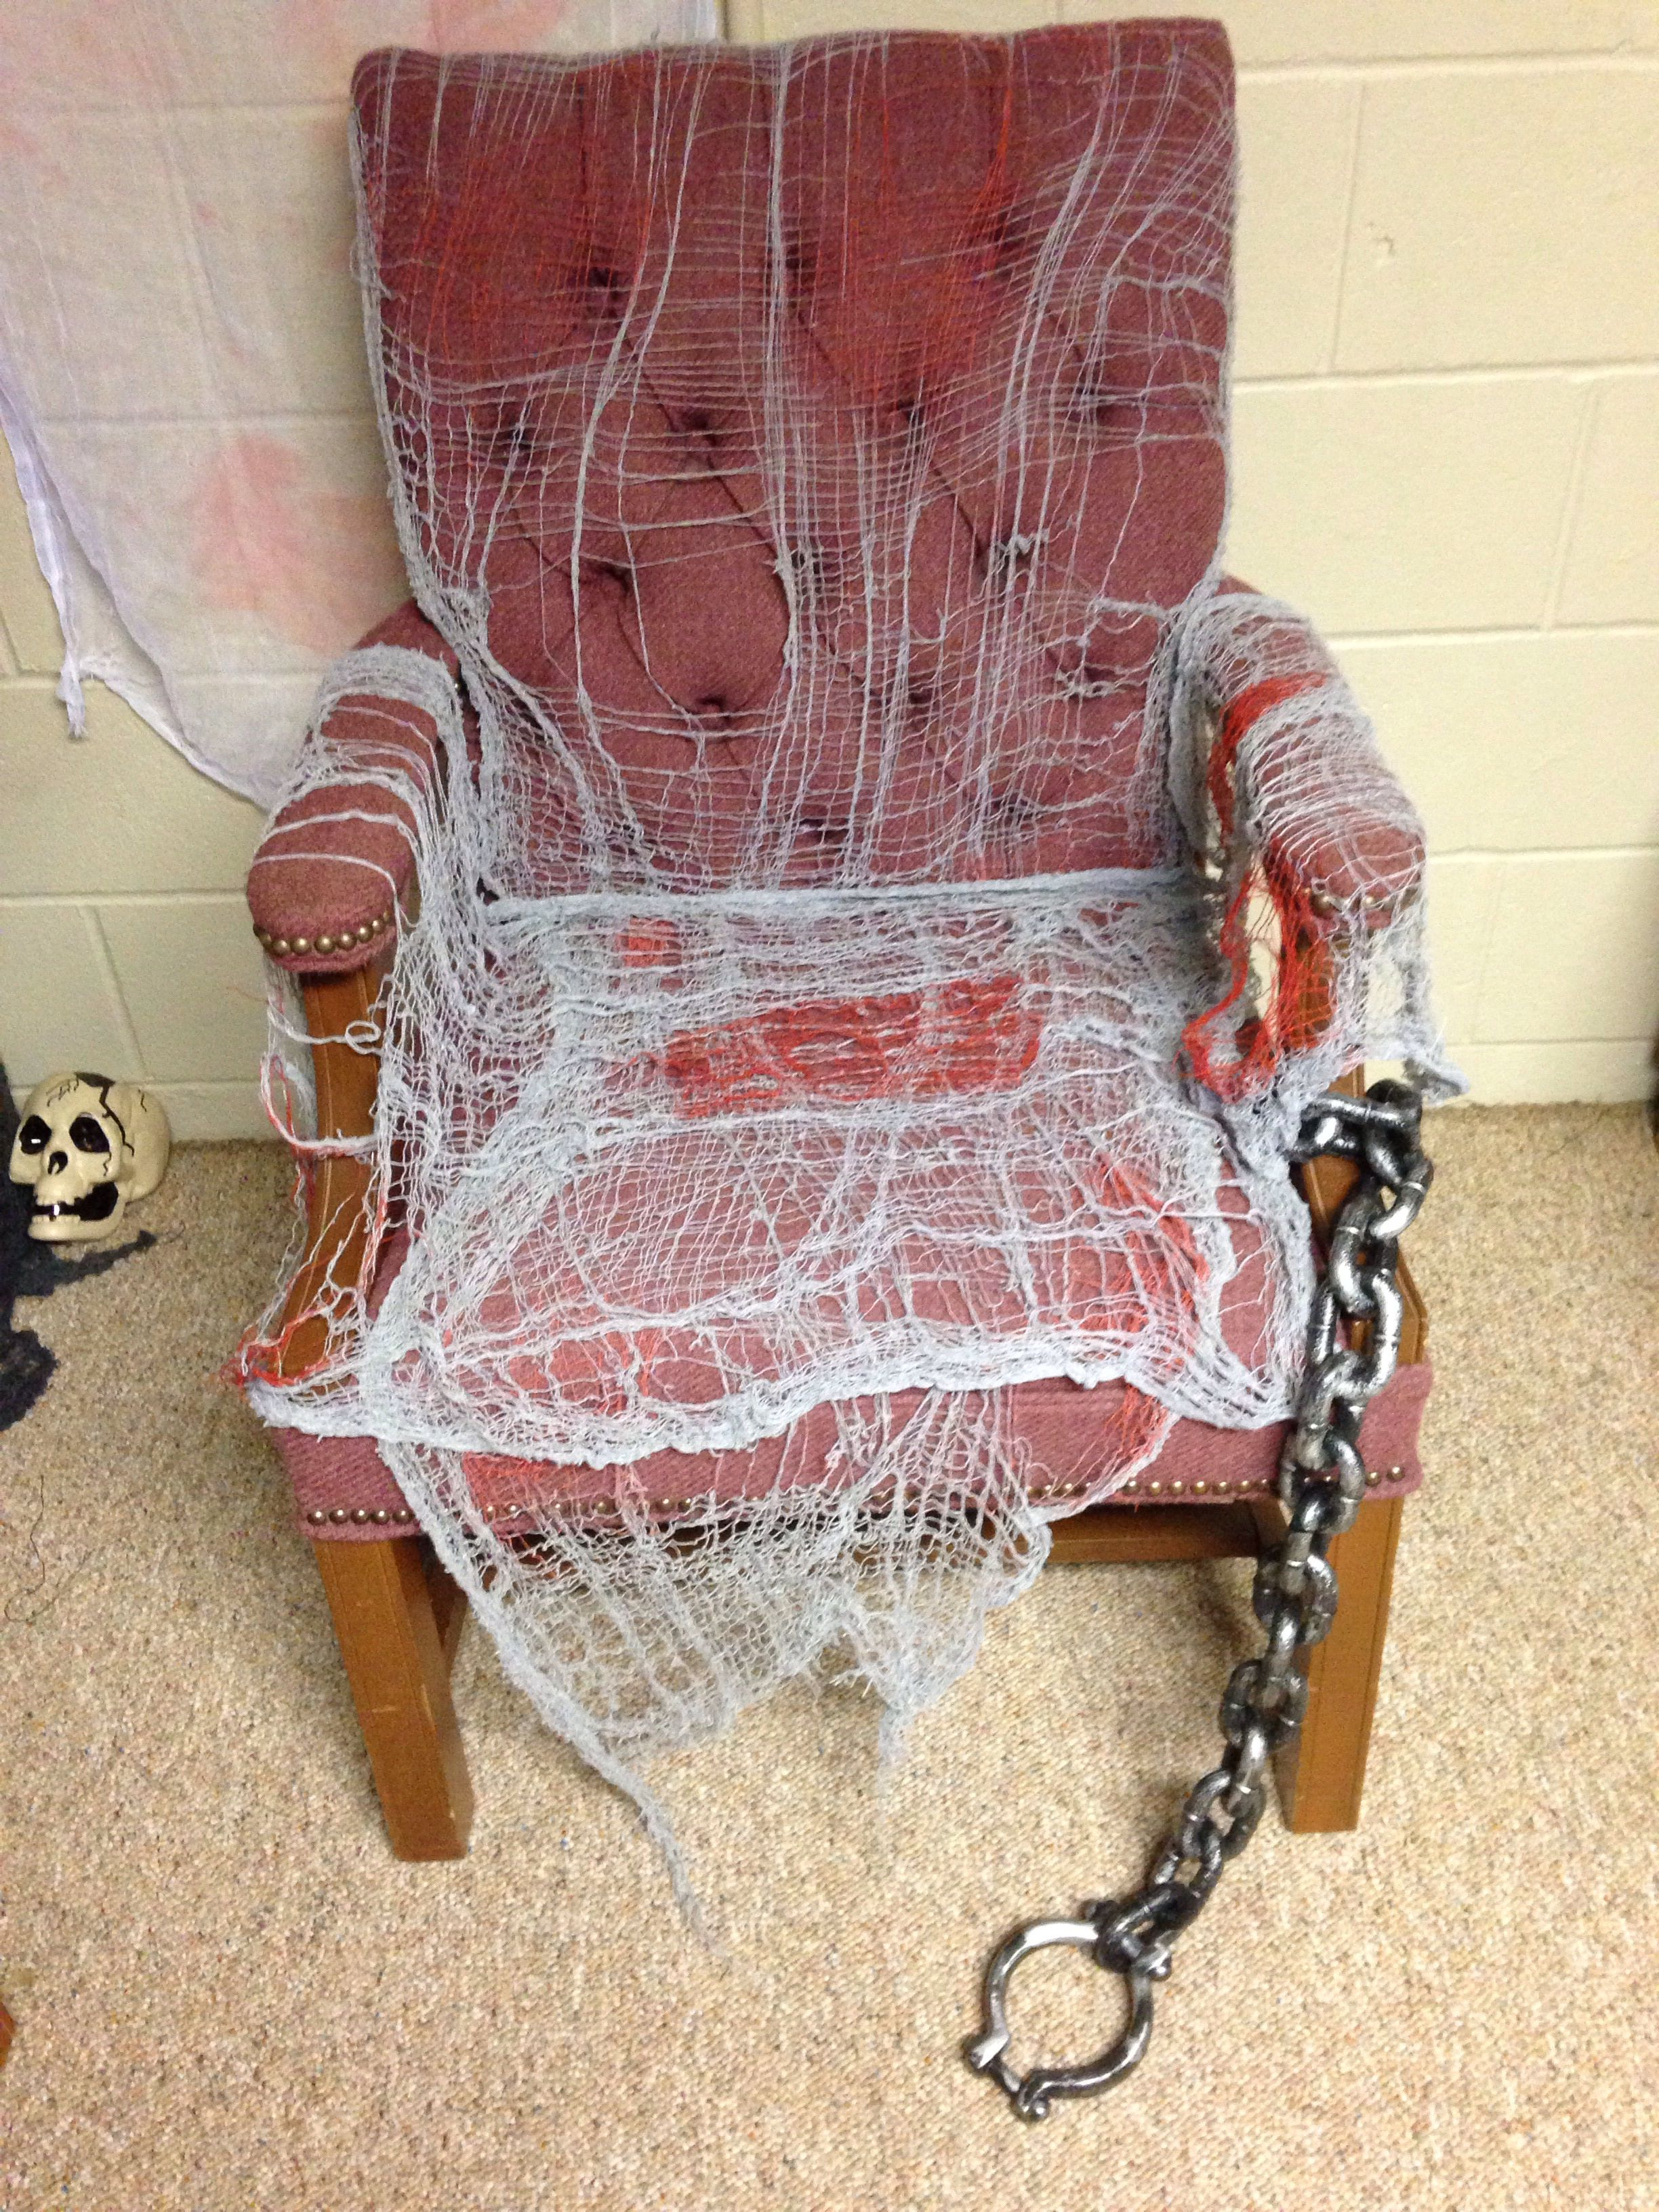 Insane Asylum Chairs Cloth From Dollar Tree And Chains Working With What I Have